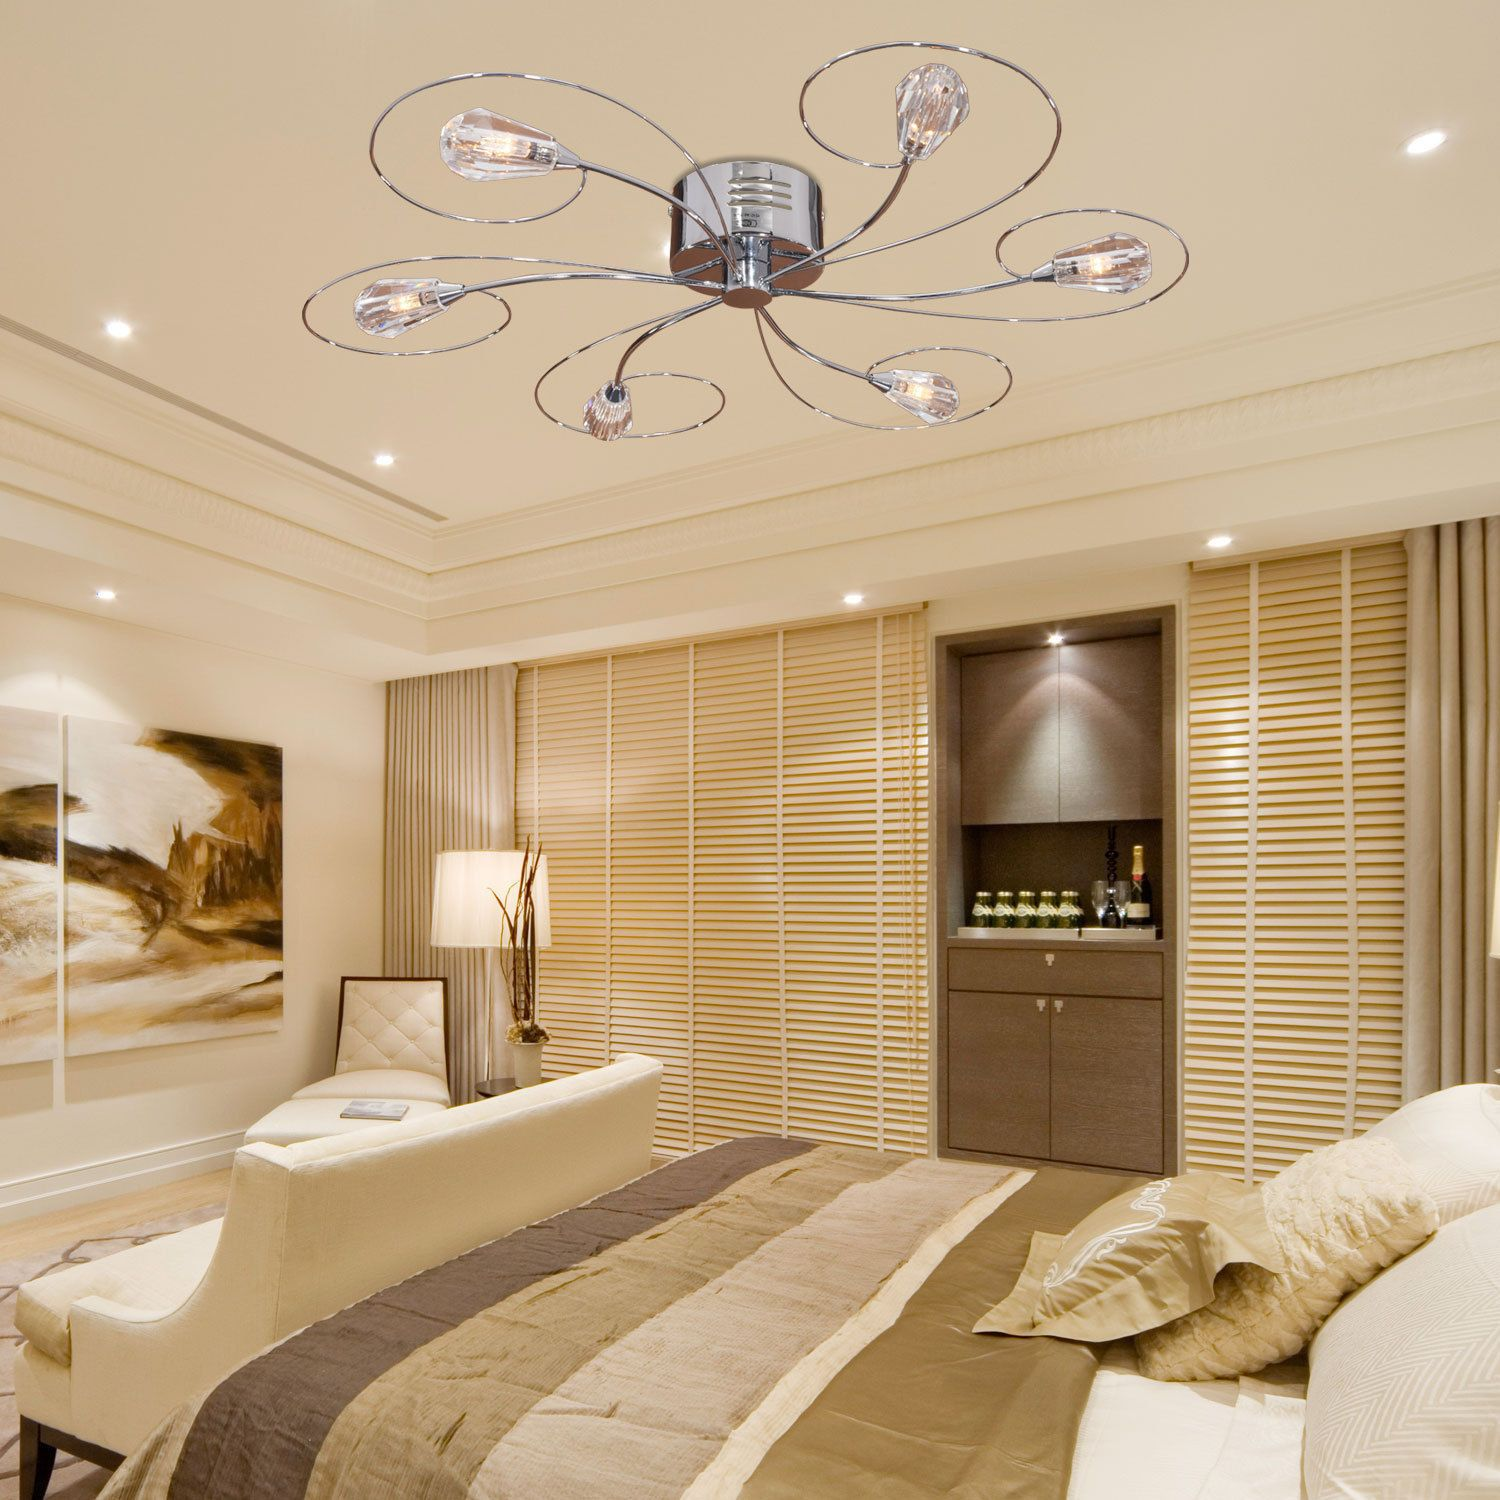 Unique Bright Chandelier Ceiling Fan for Ceiling Deocrating ...